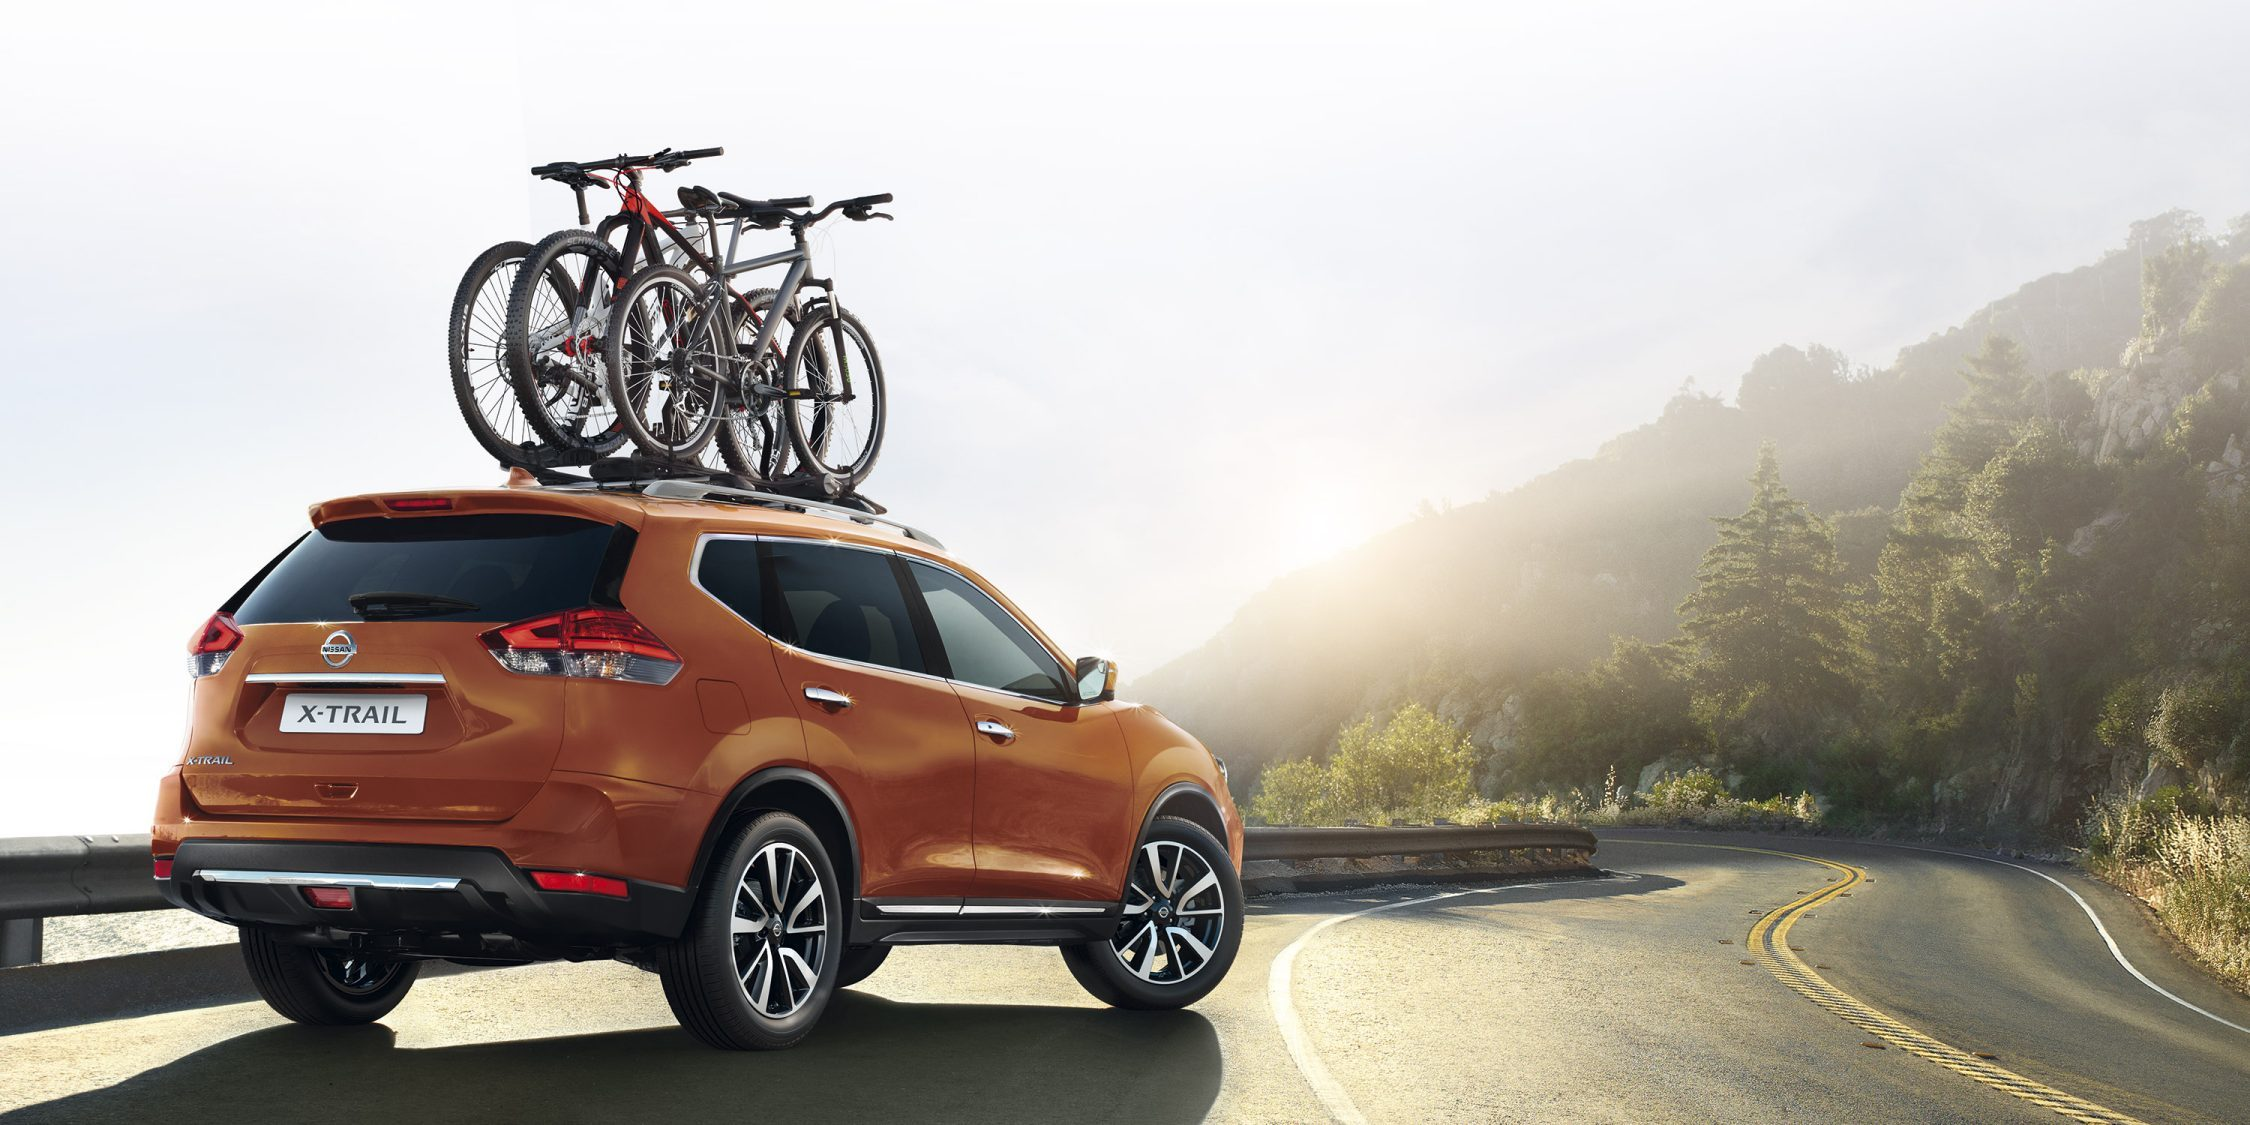 Nissan X-Trail on mountain road with bikes on roof